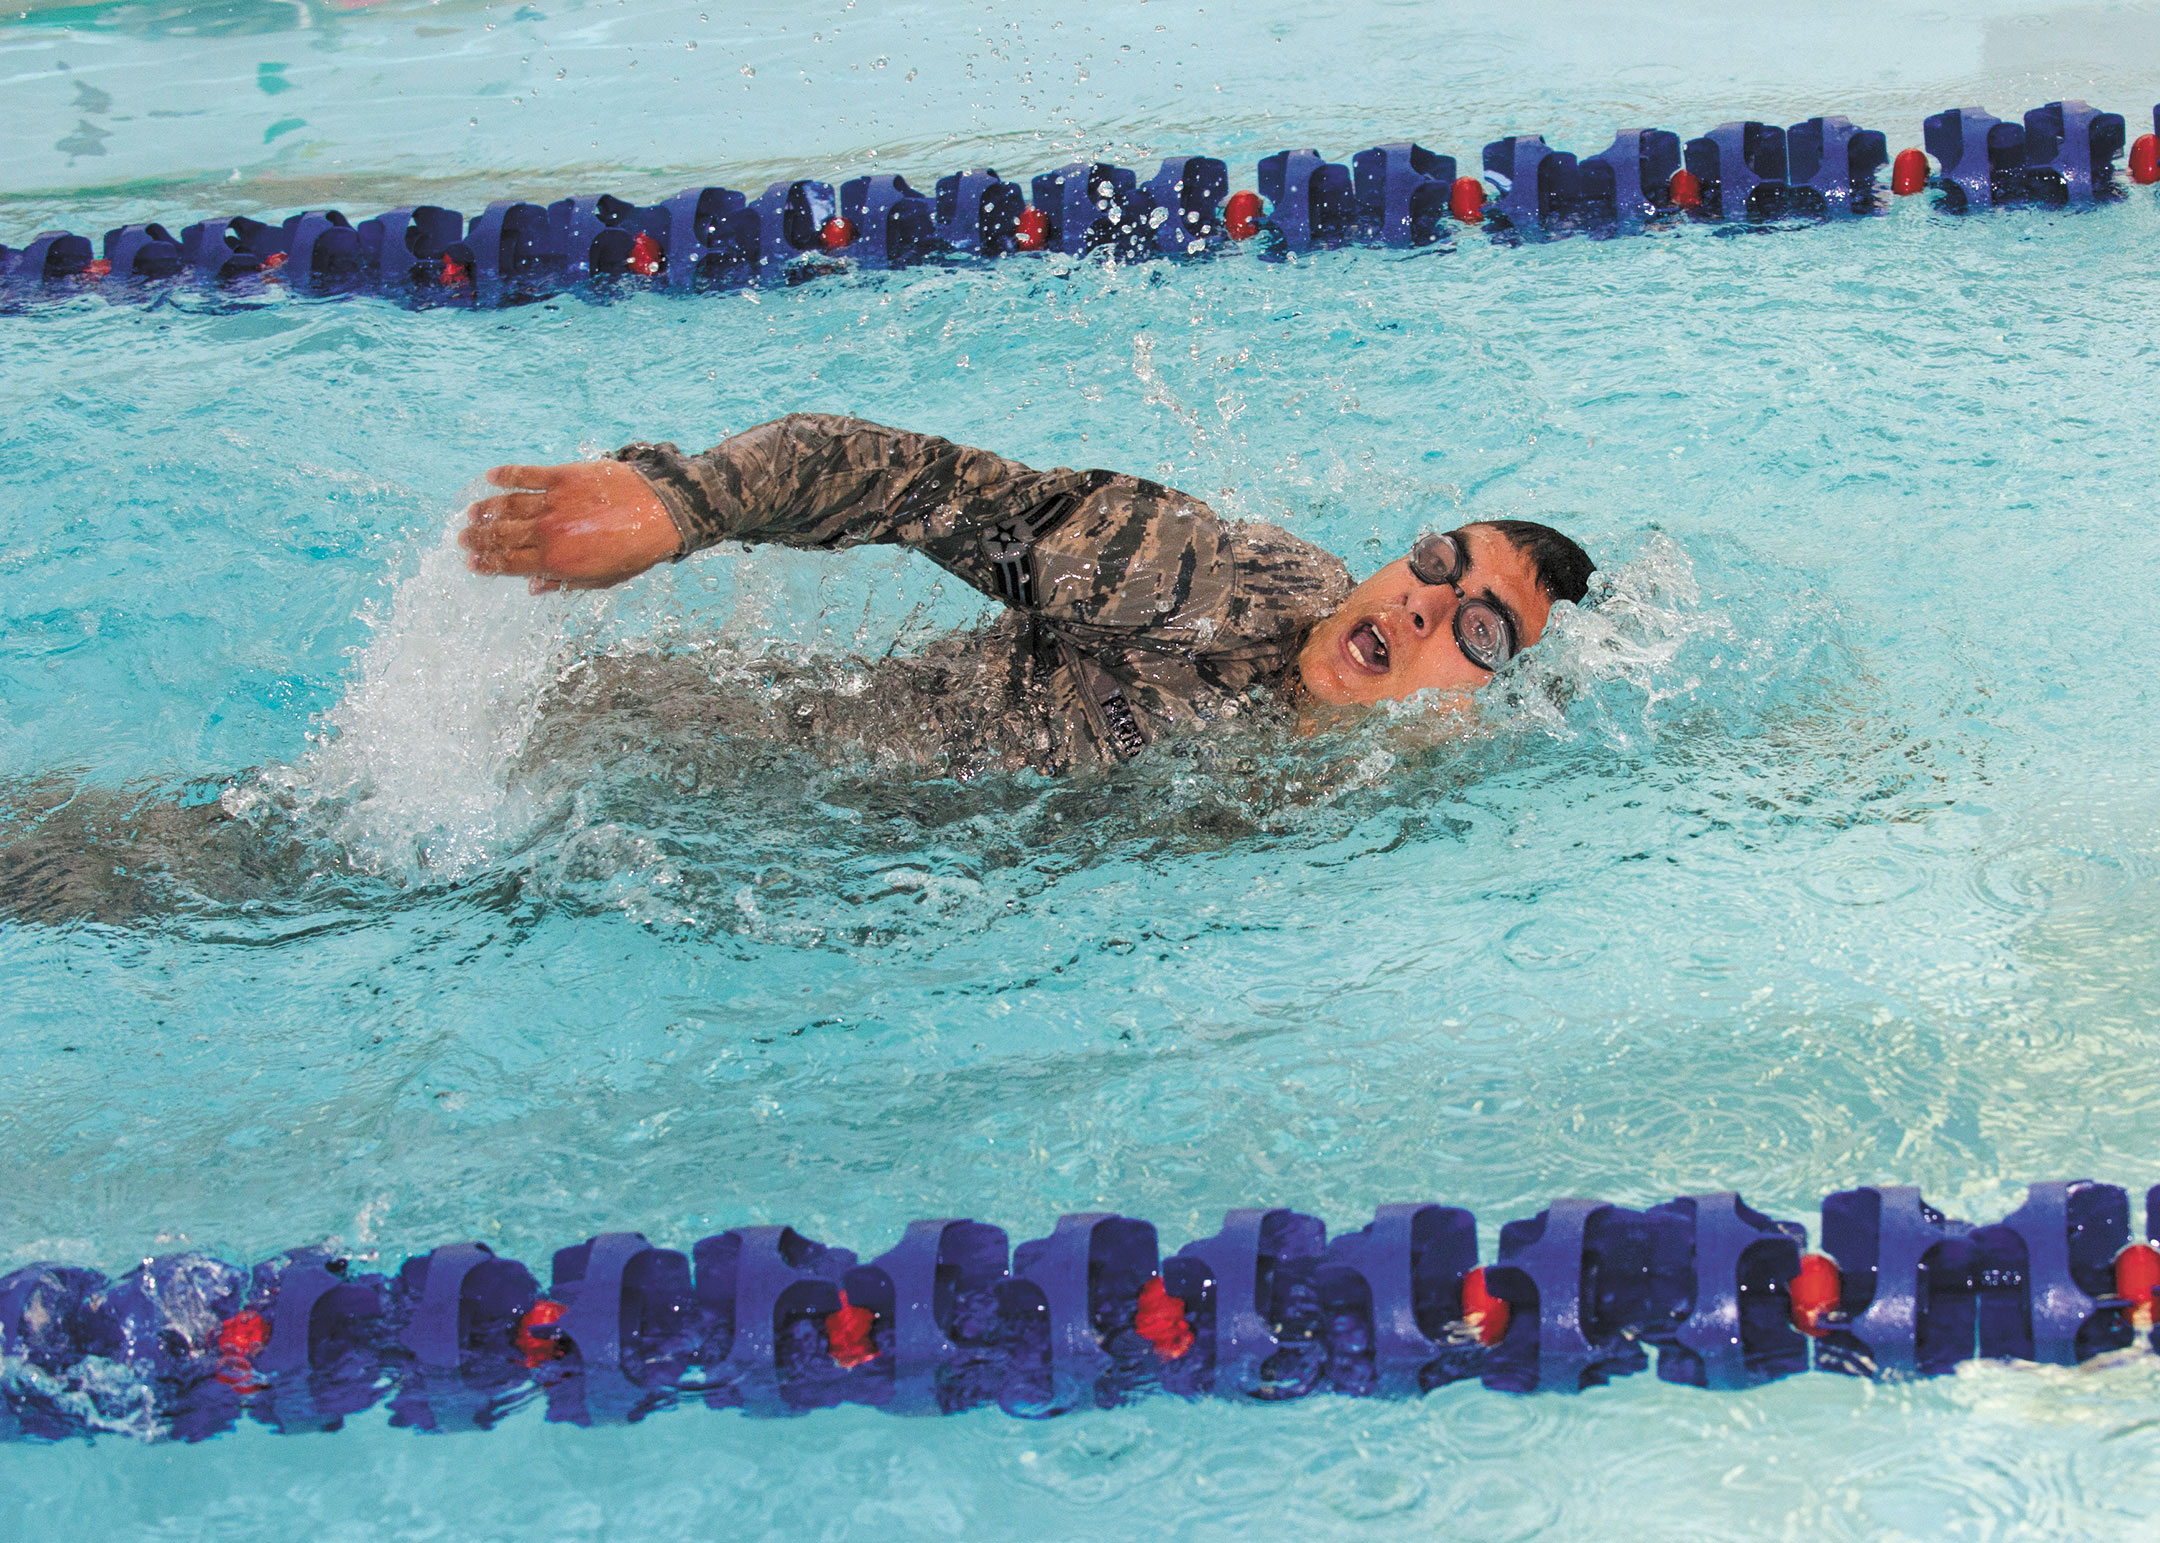 U.S. Air Force photo/Airman 1st Class Rose Gudex Senior Airman Brian Parra, 2nd Space Operations Squadron satellite systems operator, swims the 100 meter swim to see if he qualifies for the German Armed Forces Proficiency Badge at the Iron Horse Sports and Field Center at Fort Carson, Tuesday, June 30, 2015. The event required participants to complete the swim in less than four minutes while wearing their military uniform and a physical training uniform underneath. After the swim was completed, they had to successfully remove their outer uniform without touching the sides of the pool to pass the event.